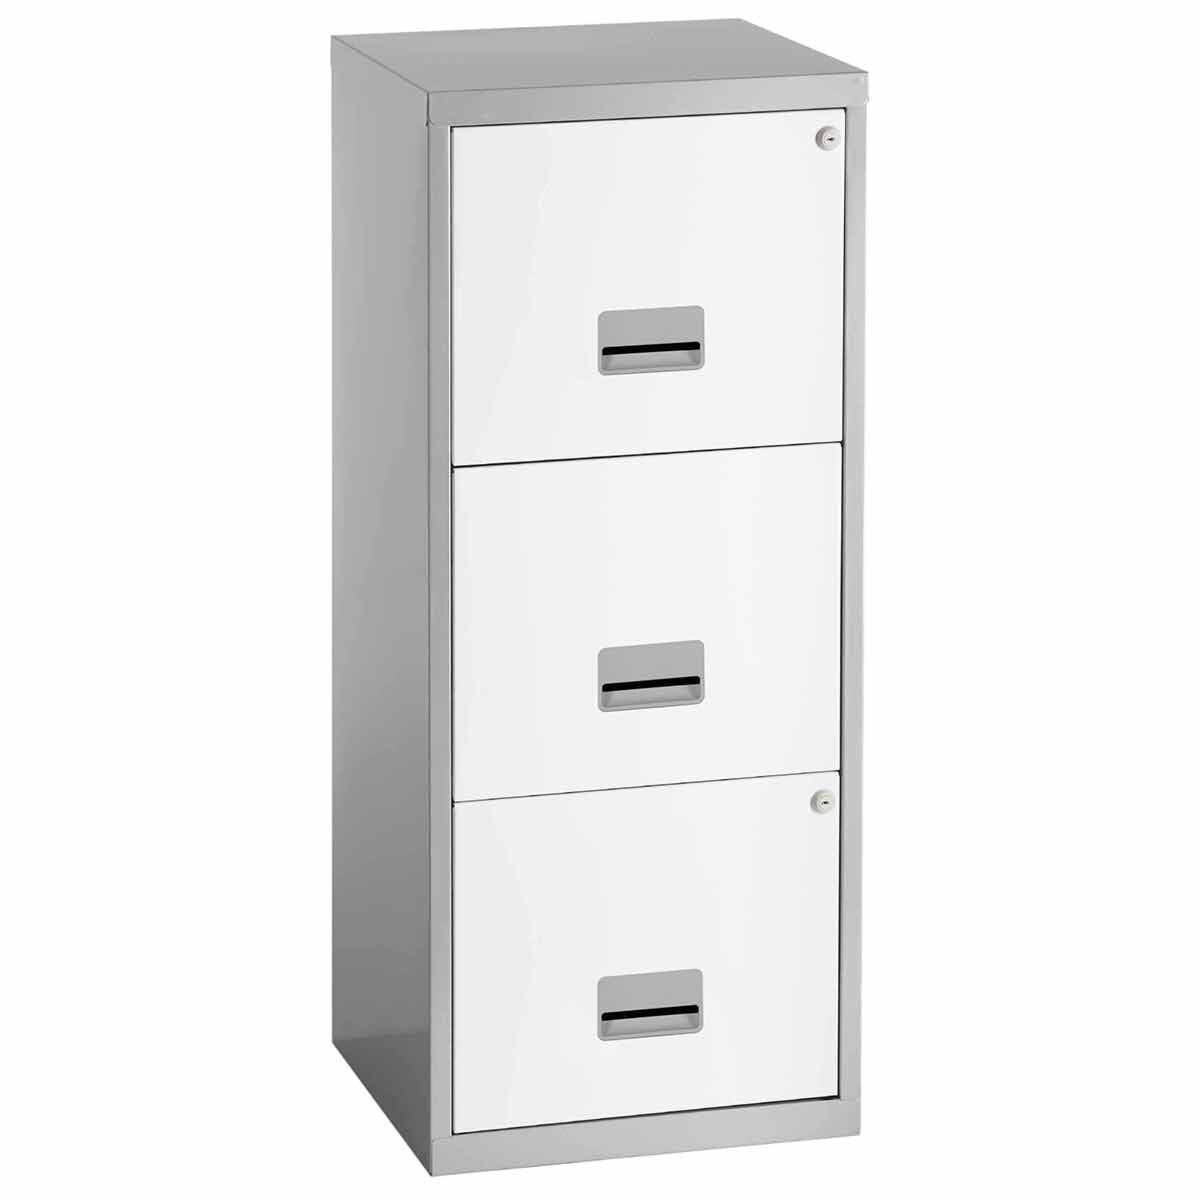 Pierre Henry A4 3 Drawer Maxi Filing Cabinet Silver/White